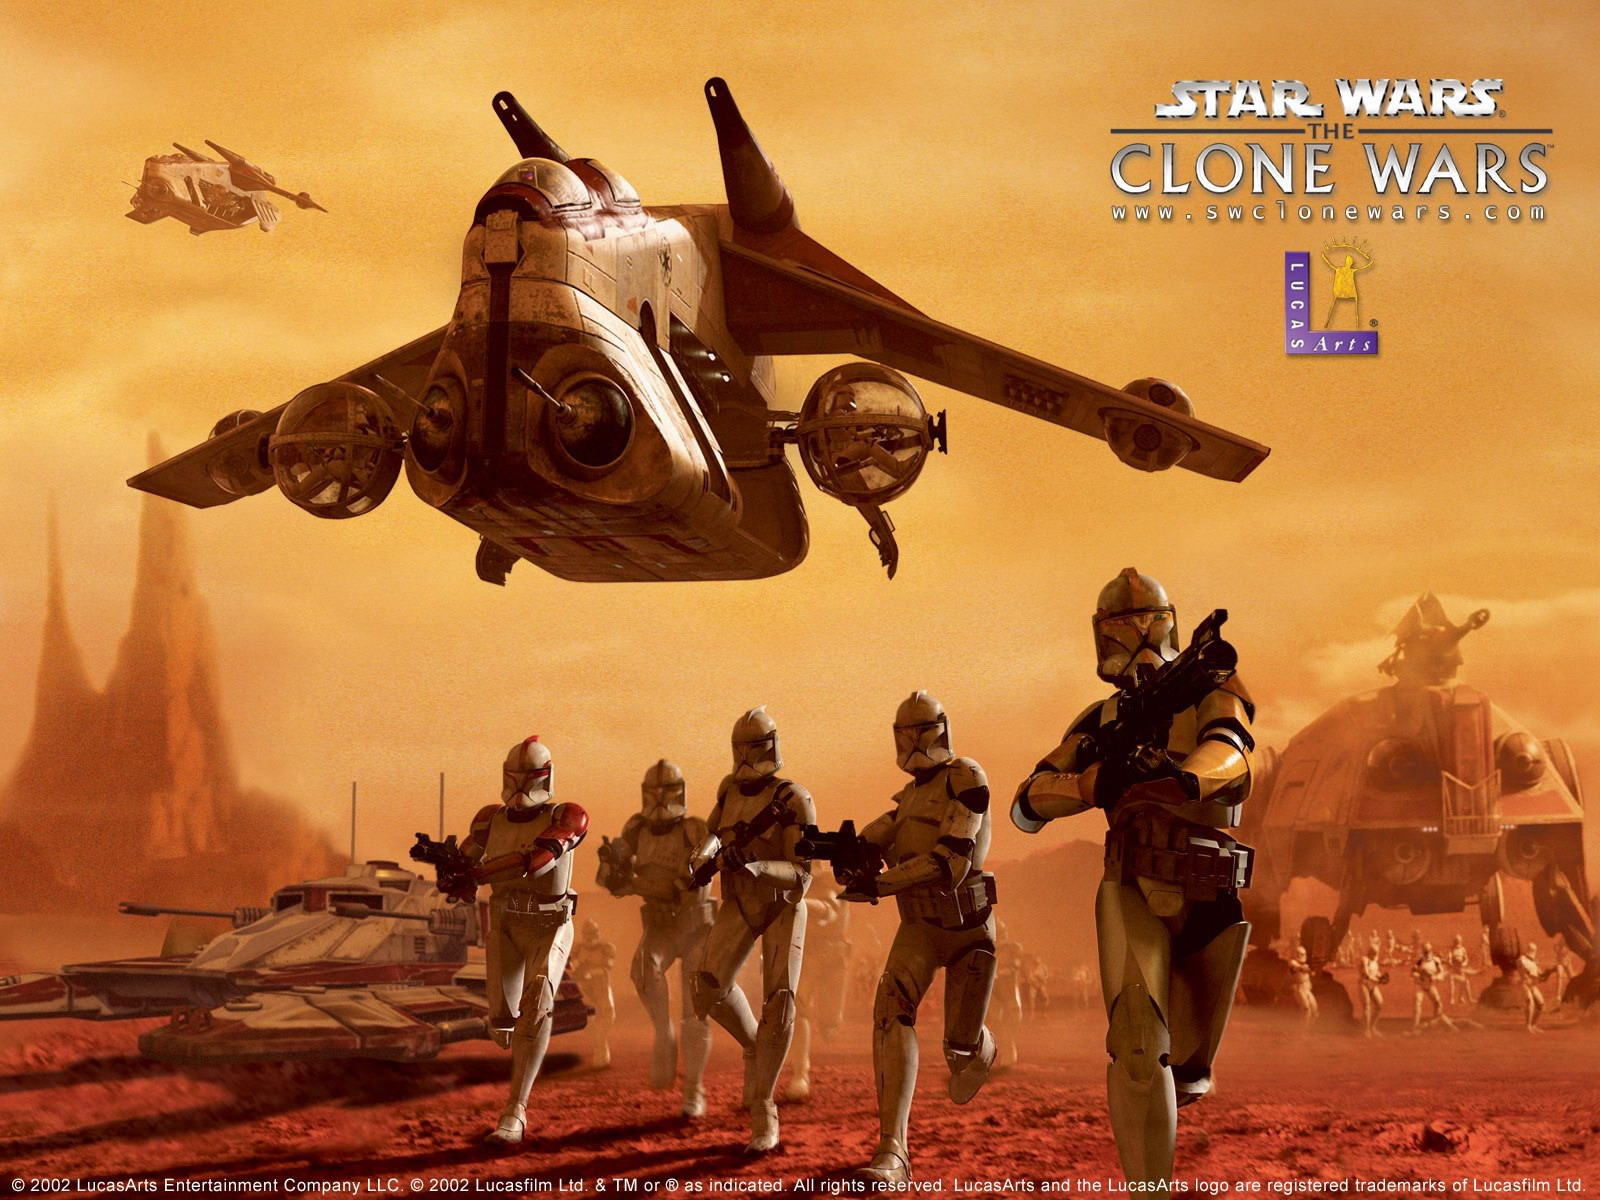 Star Wars The Clone Wars Wallpaper: Star Wars « Awesome Wallpapers